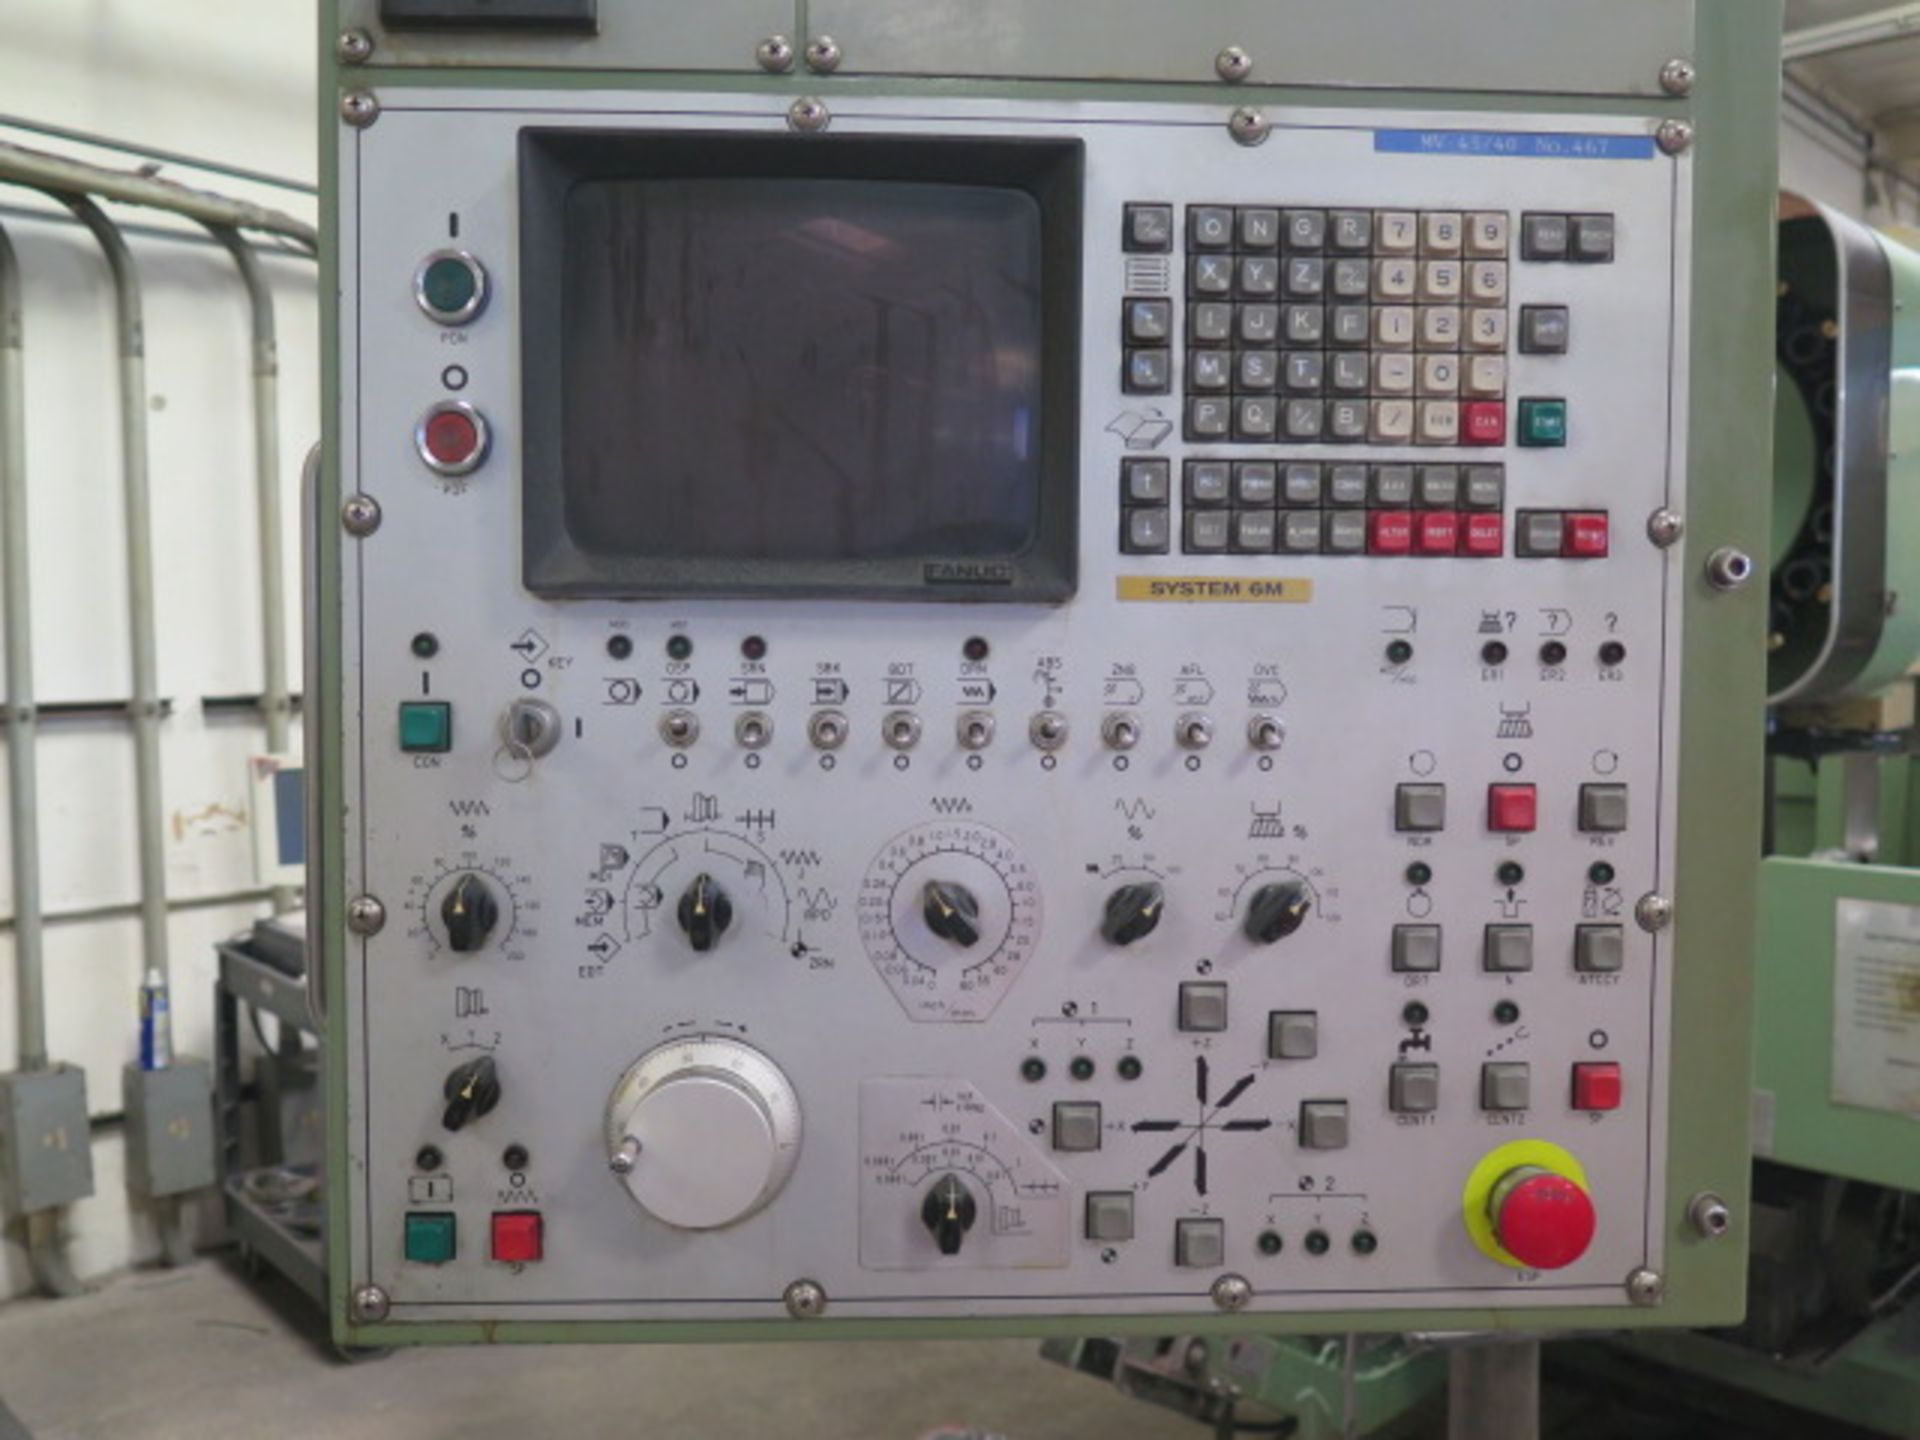 Mori Seiki MV-45/40 CNC VMC s/n 467 w/ Fanuc System 6M Controls, 20 ATC, SOLD AS IS - Image 5 of 14